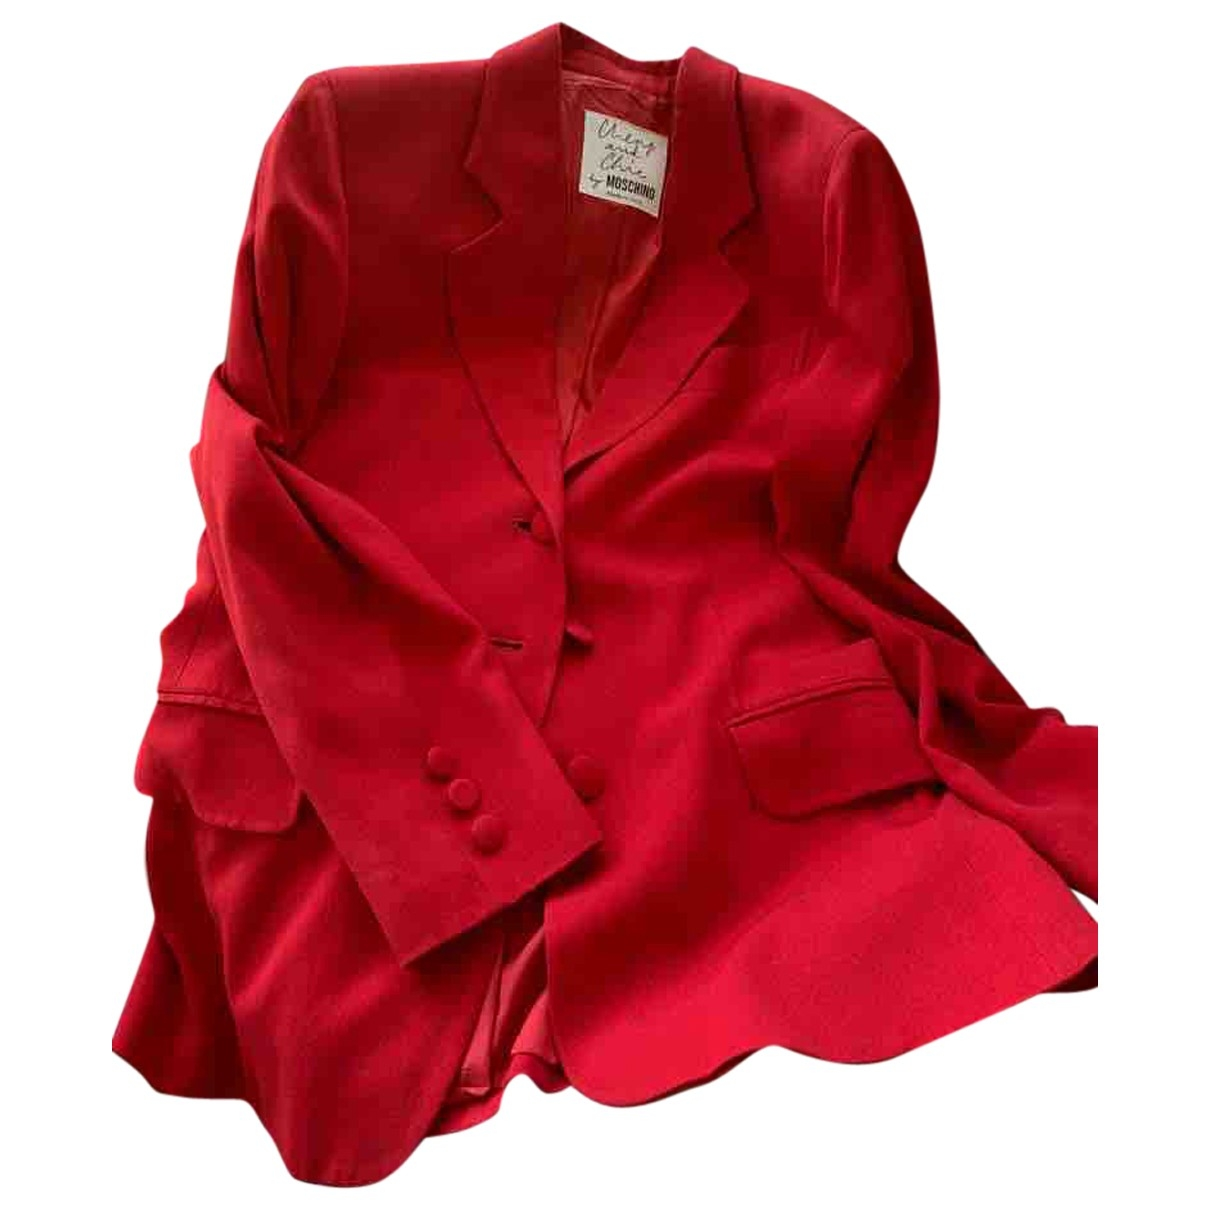 Moschino Cheap And Chic \N Red dress for Women 44 IT